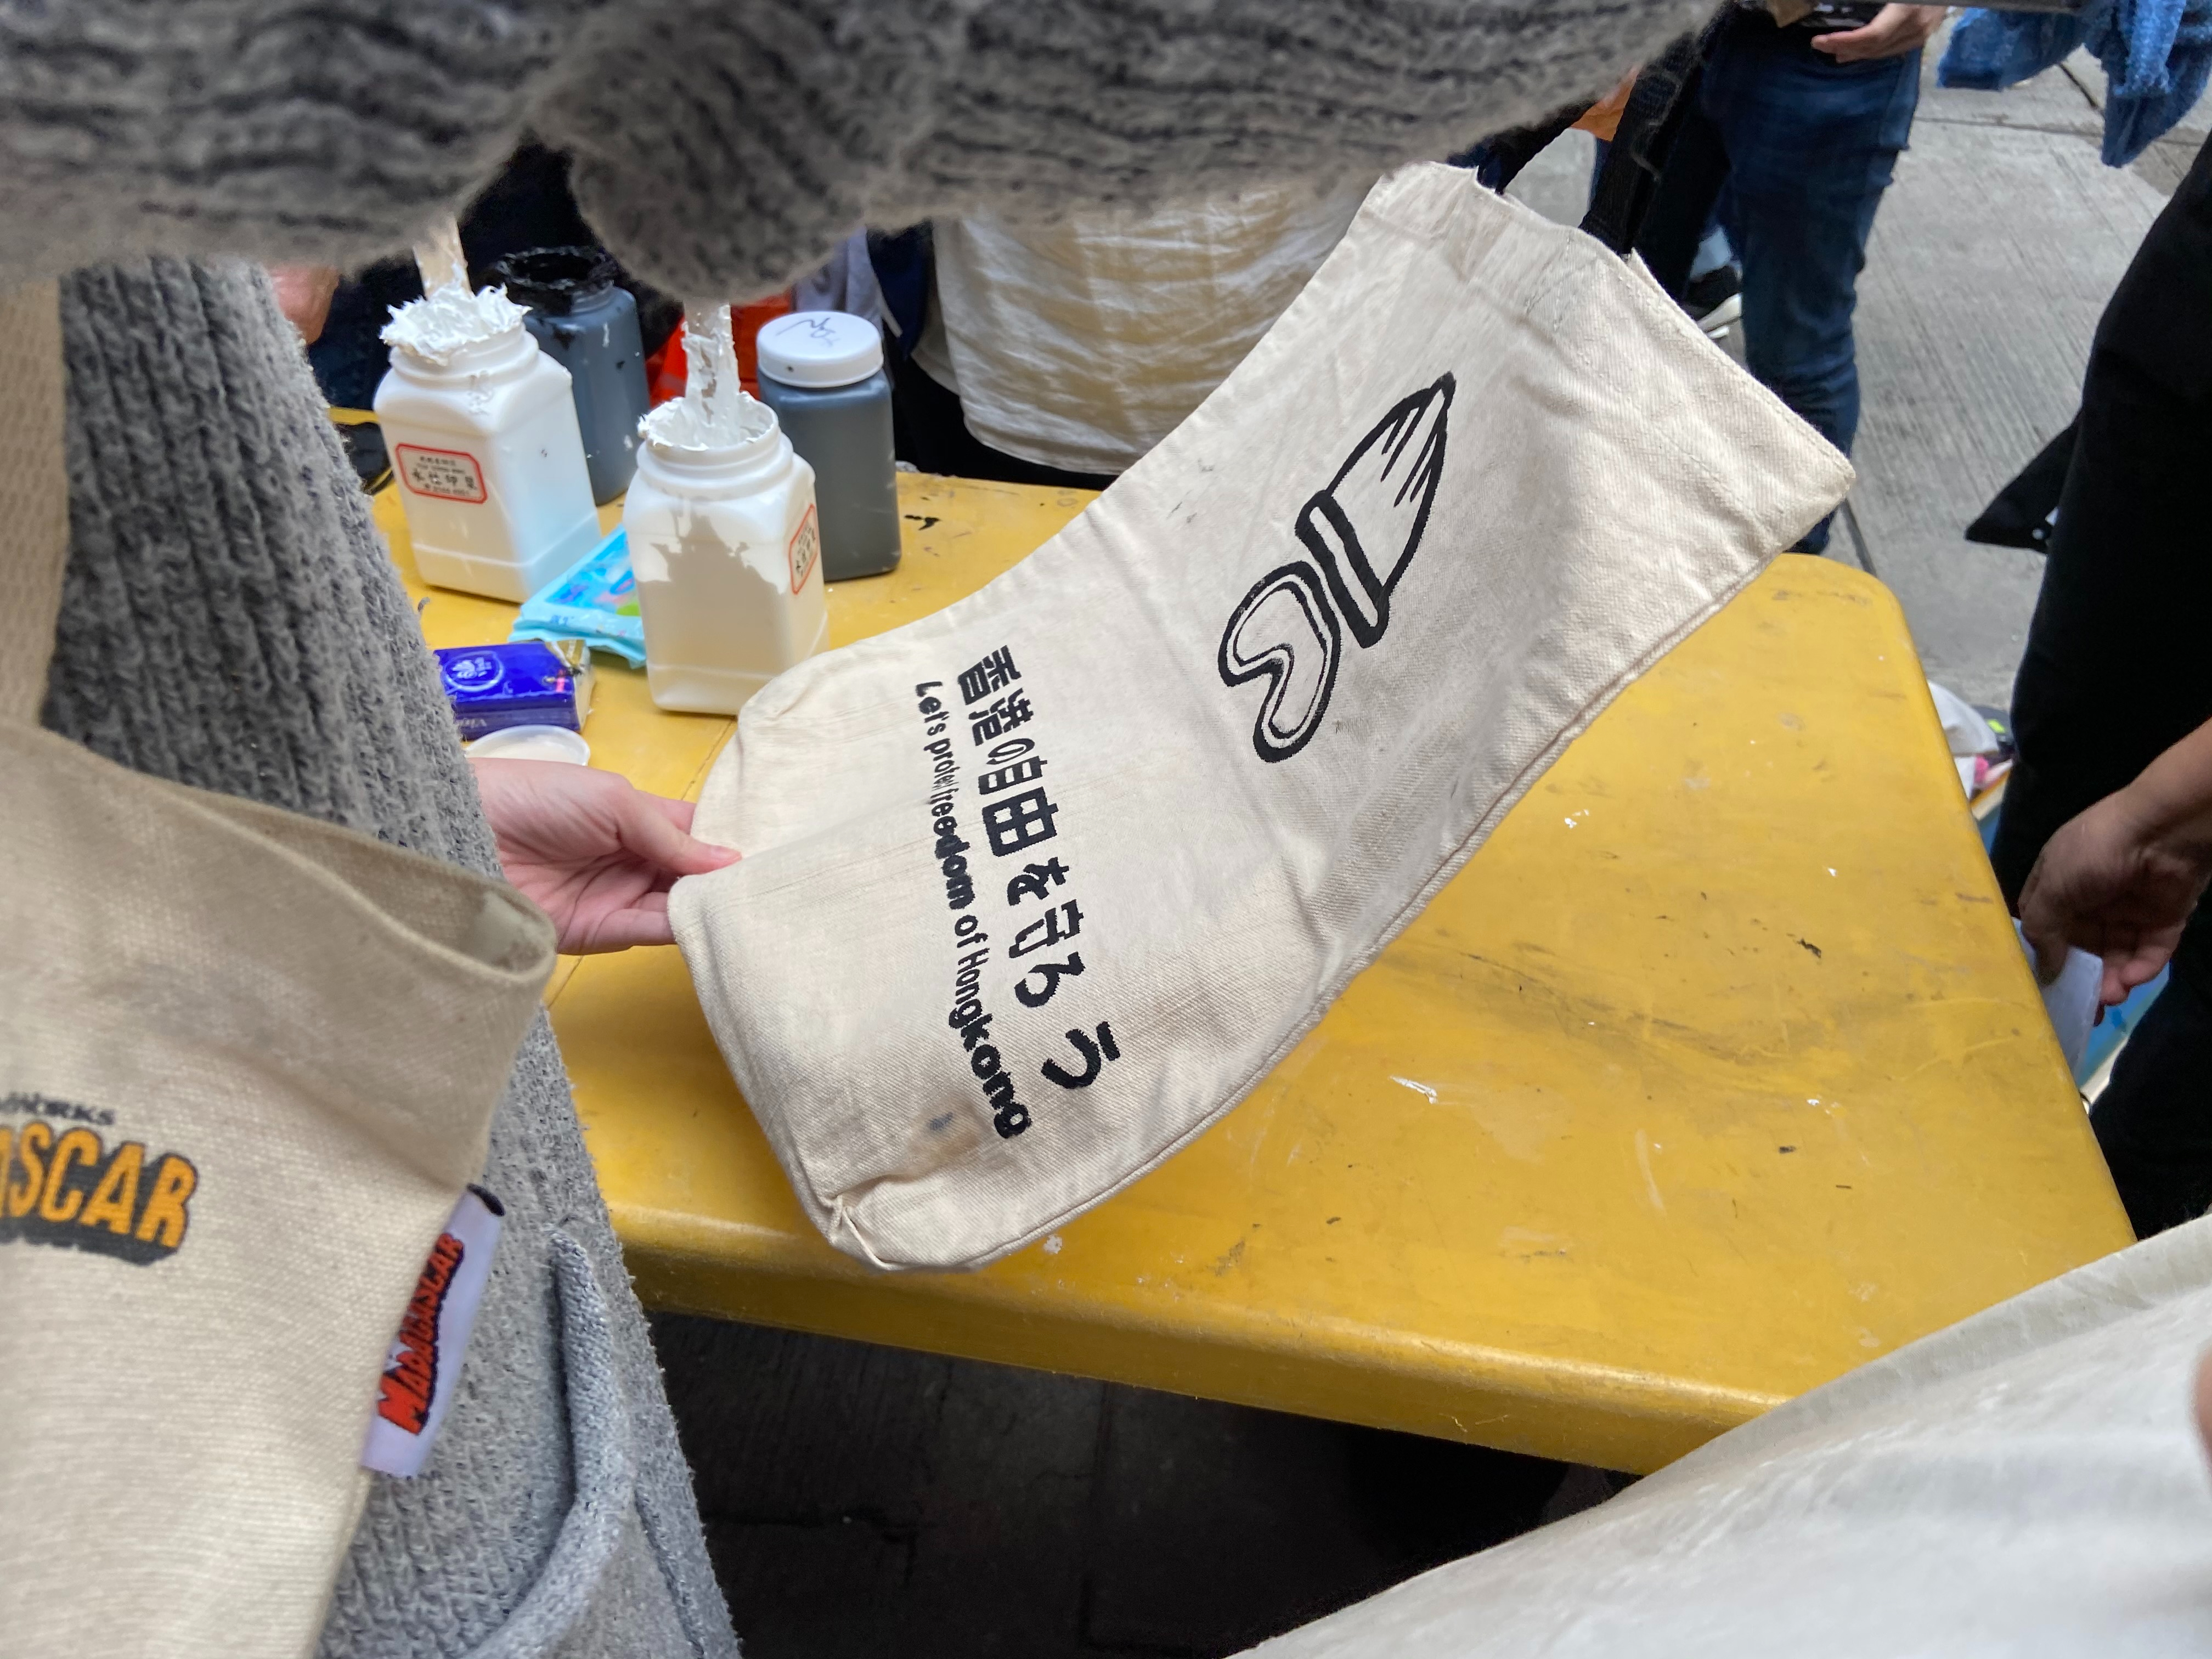 A woman gets her bag stamped with a protest logo and slogan at an alternative Lunar New Year market in Sai Ying Pun, Hong Kong, Jan. 19, 2020.